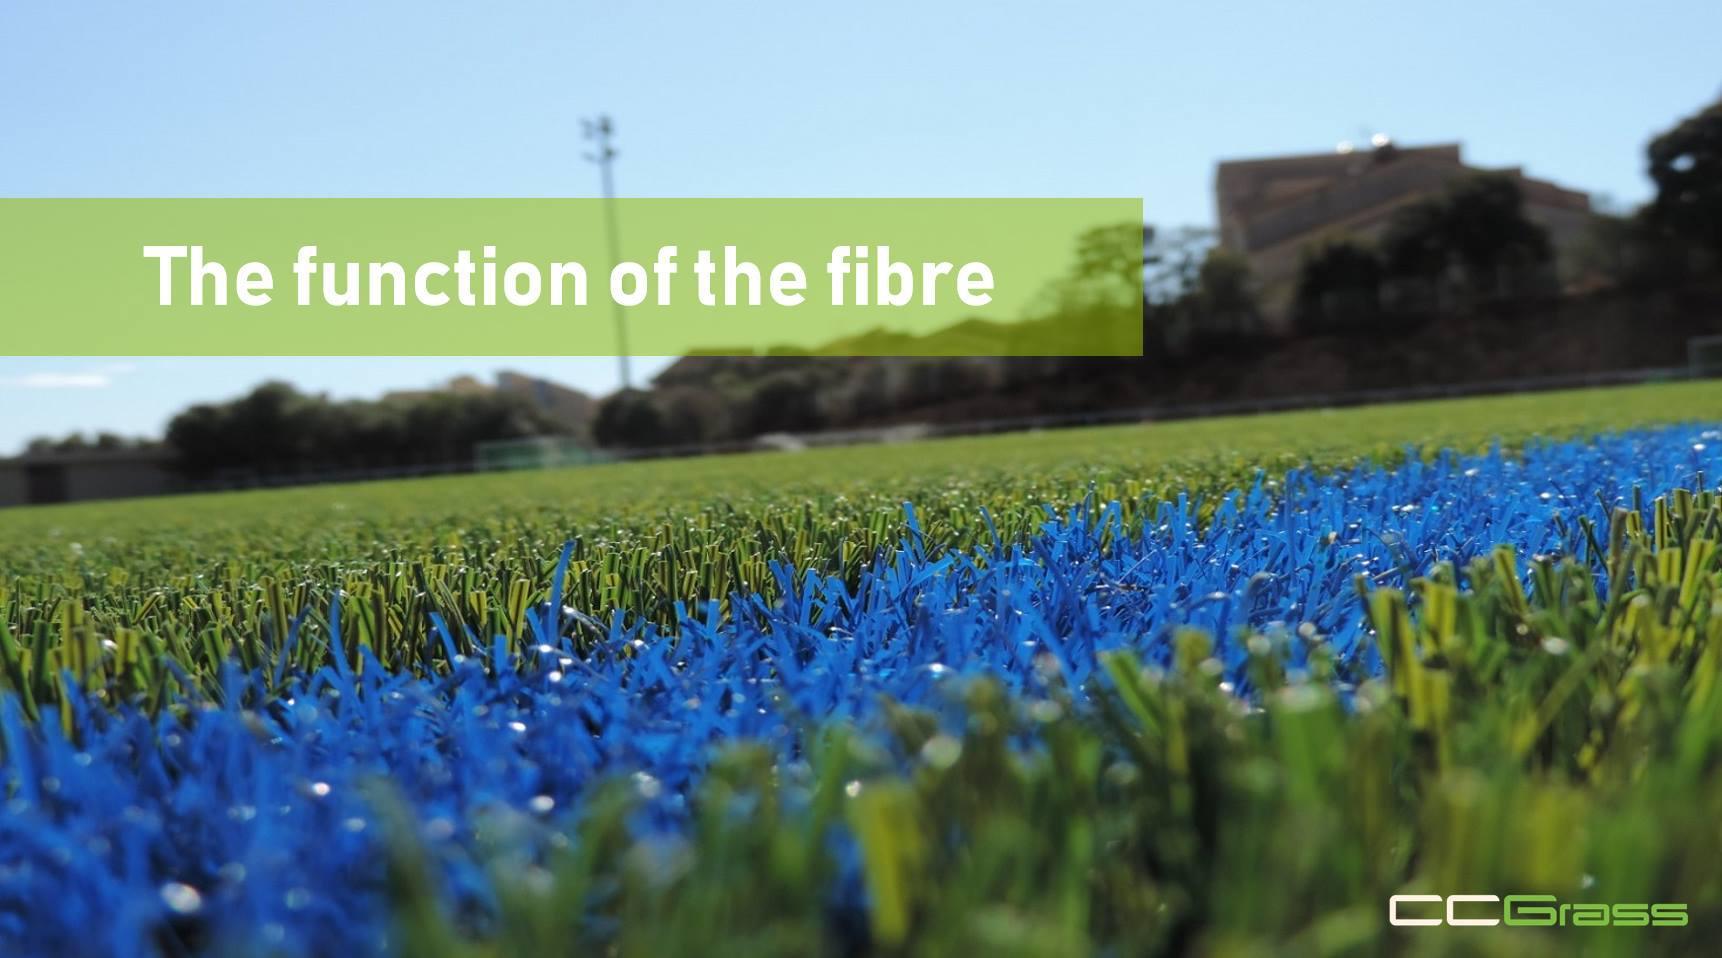 How do the artificial grass fibers play different functions